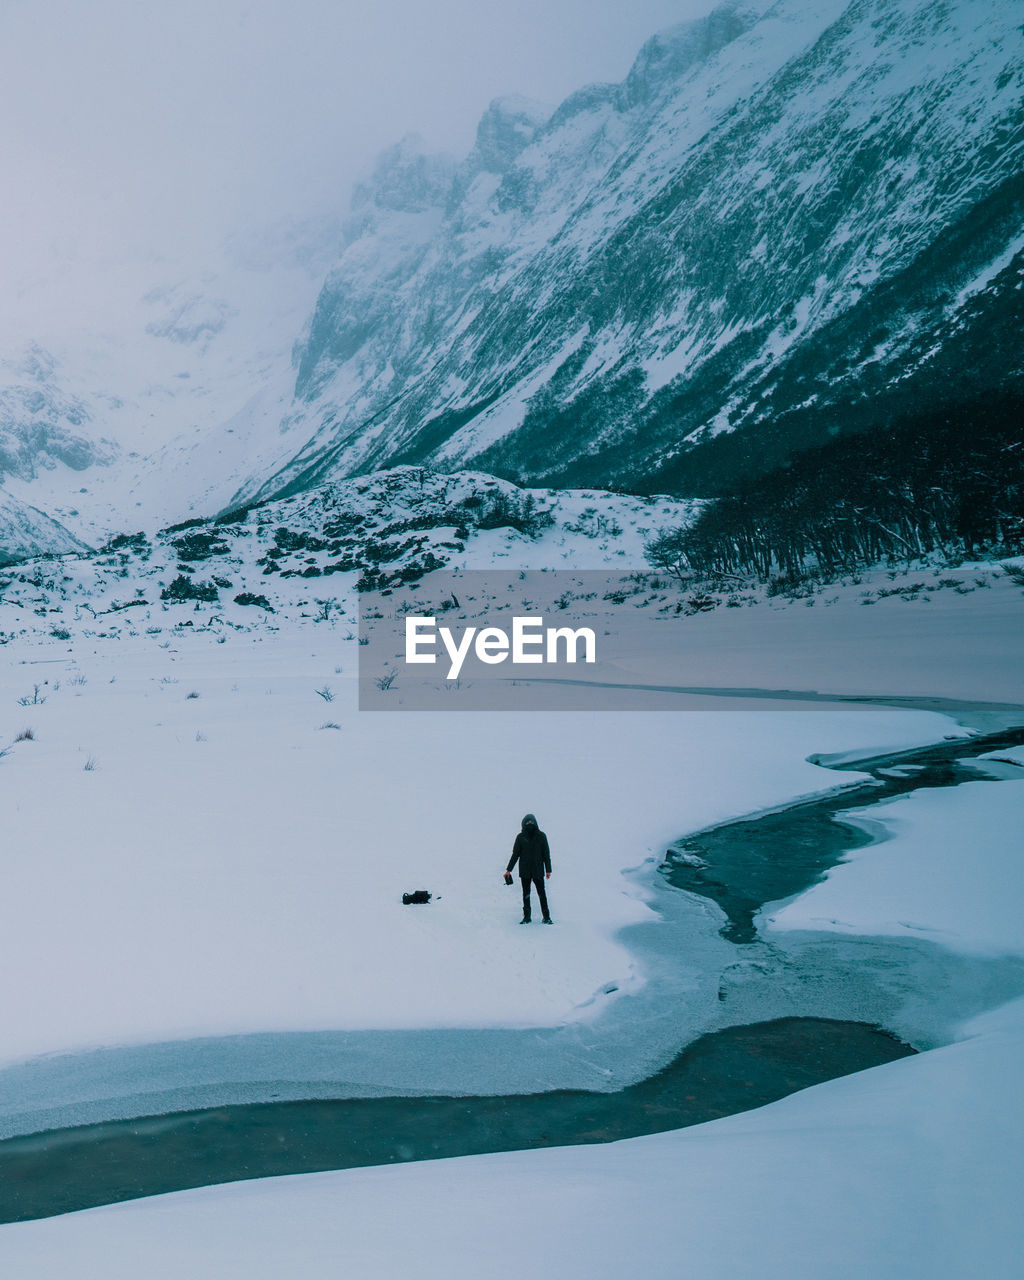 HIGH ANGLE VIEW OF PERSON IN A MOUNTAIN